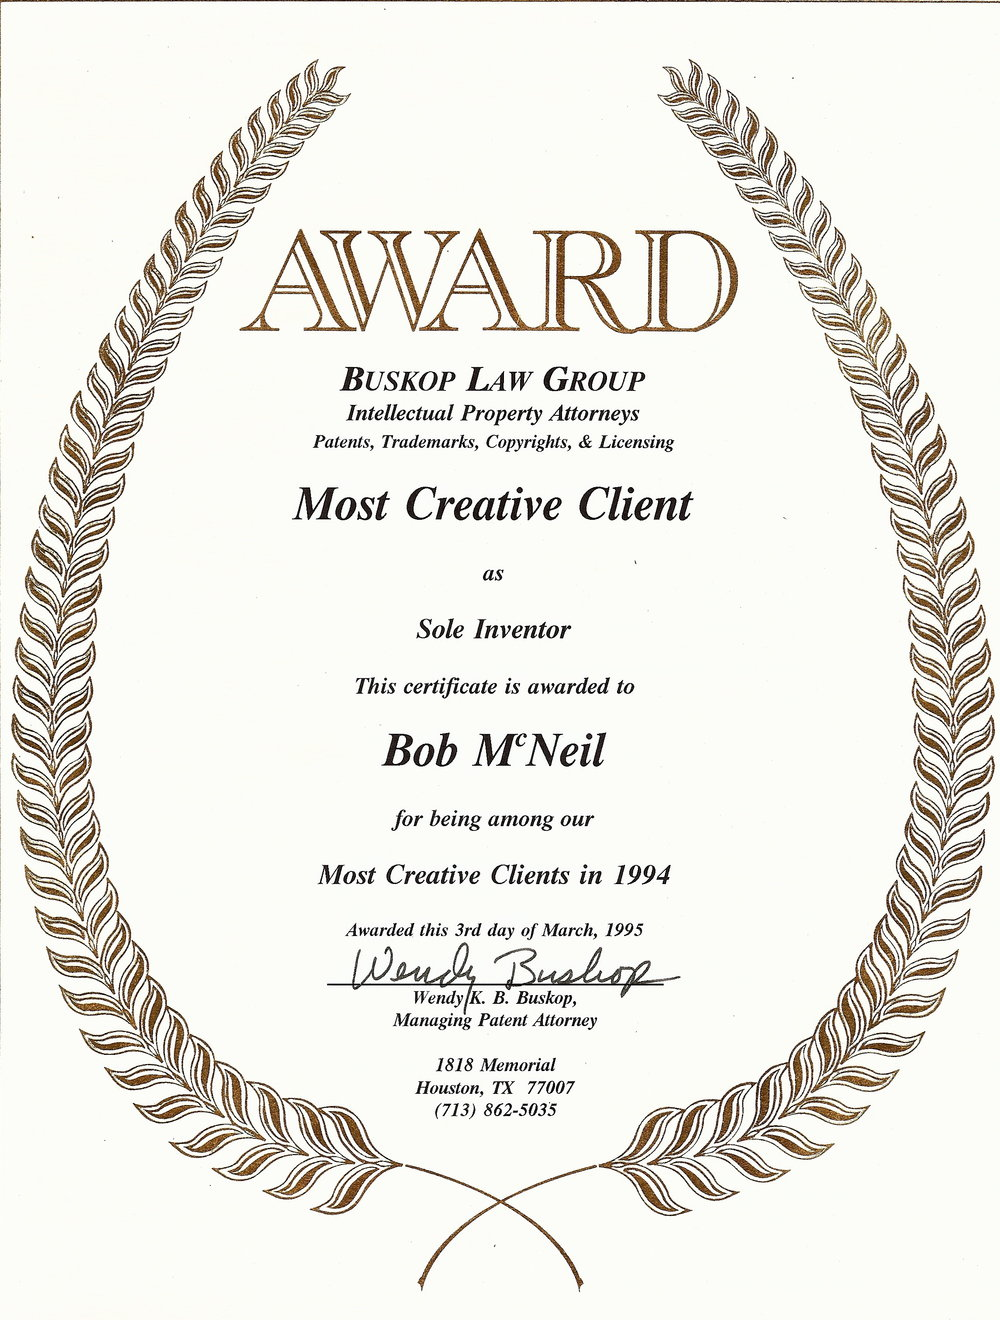 Bob McNeil - 1994 - Age 45 - Buskop Law Group - Most Creative Client - Sole Inventor